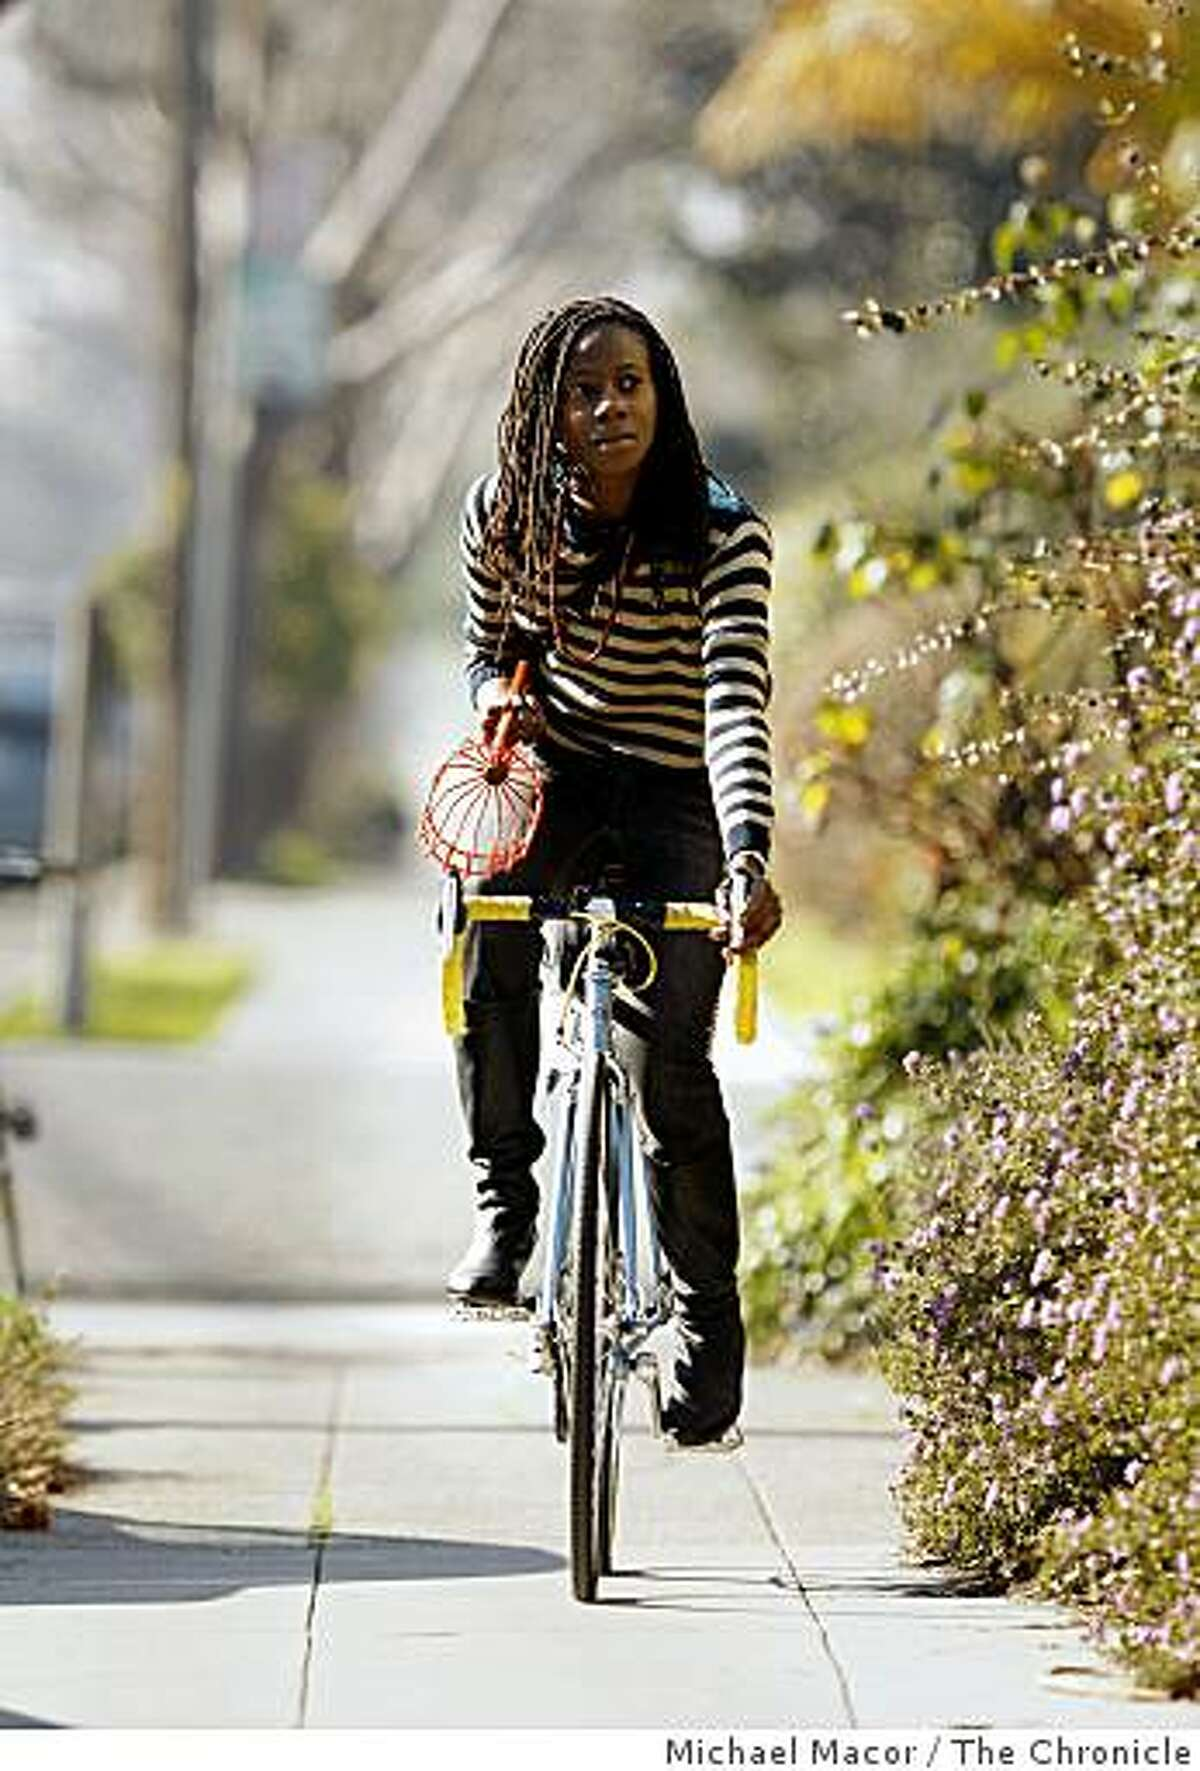 Asiya Wadud, searches the streets for fruit trees in the Rockridge area of Berkeley, Calif., on Friday Jan. 30, 2008. Wadud has an obsession with saving city-grown fruit from being wasted.